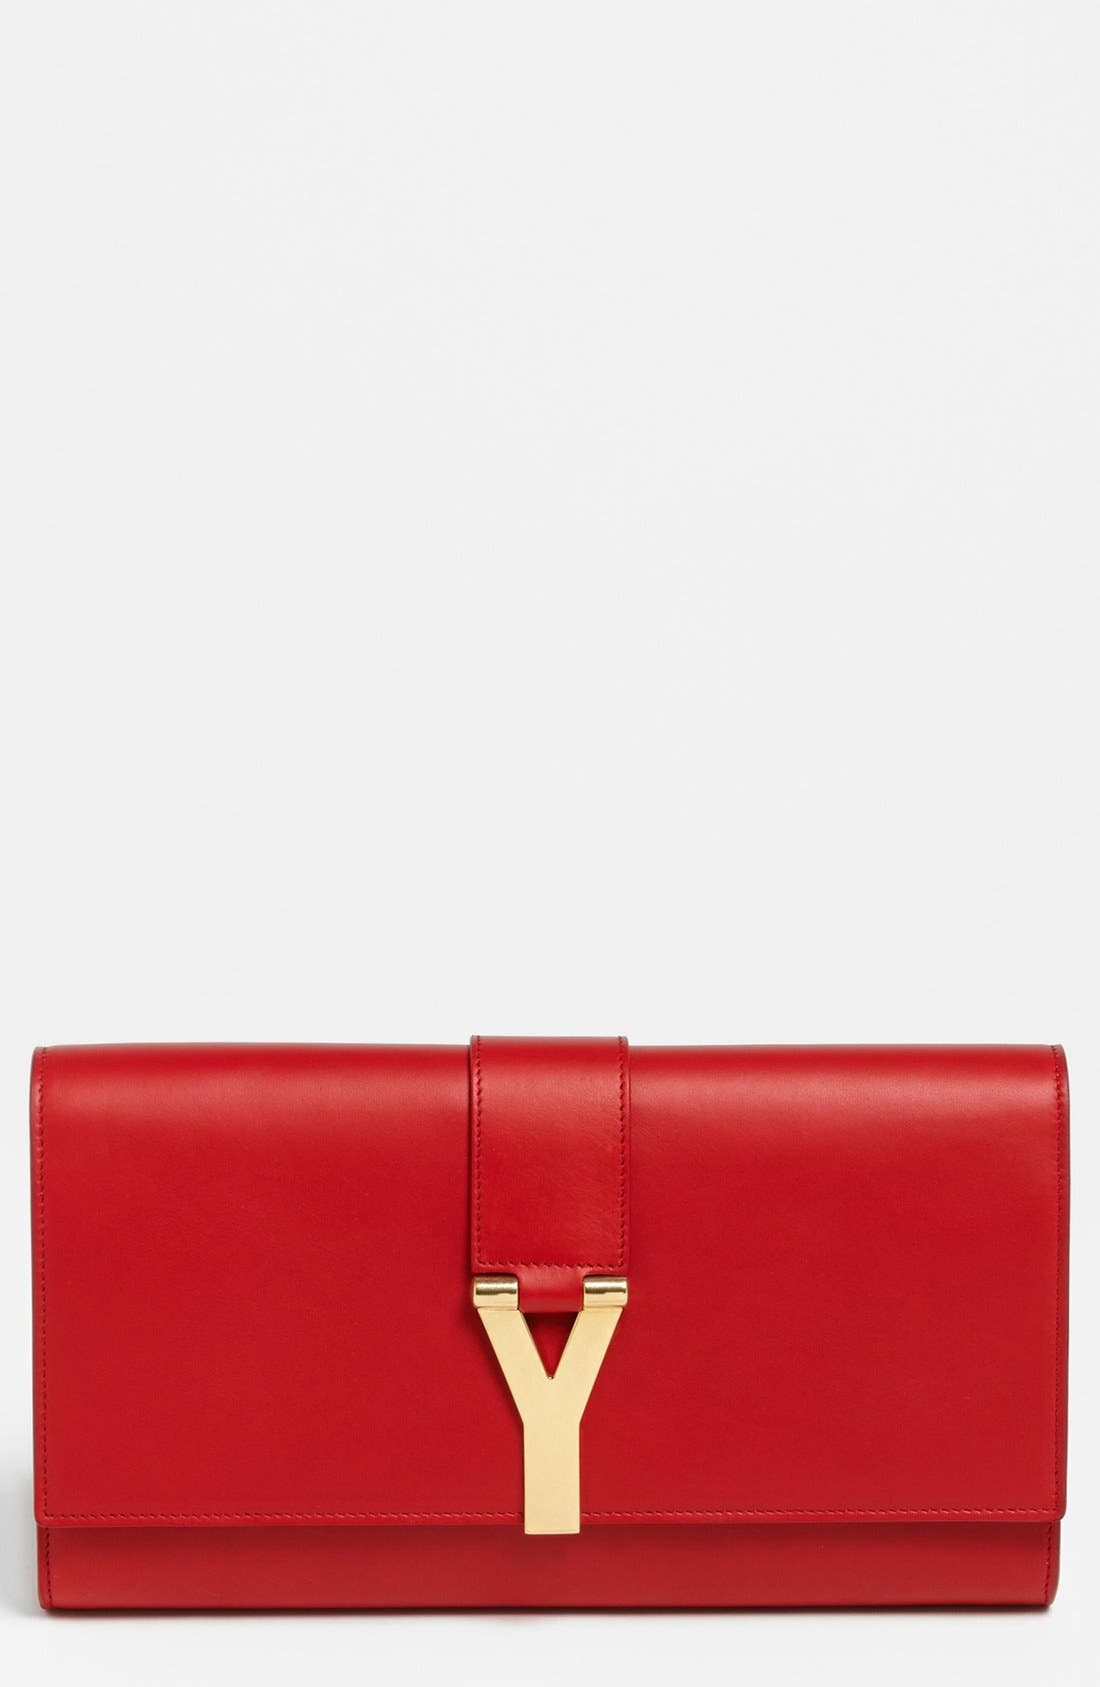 Alternate Image 1 Selected - Saint Laurent 'Y' Leather Clutch